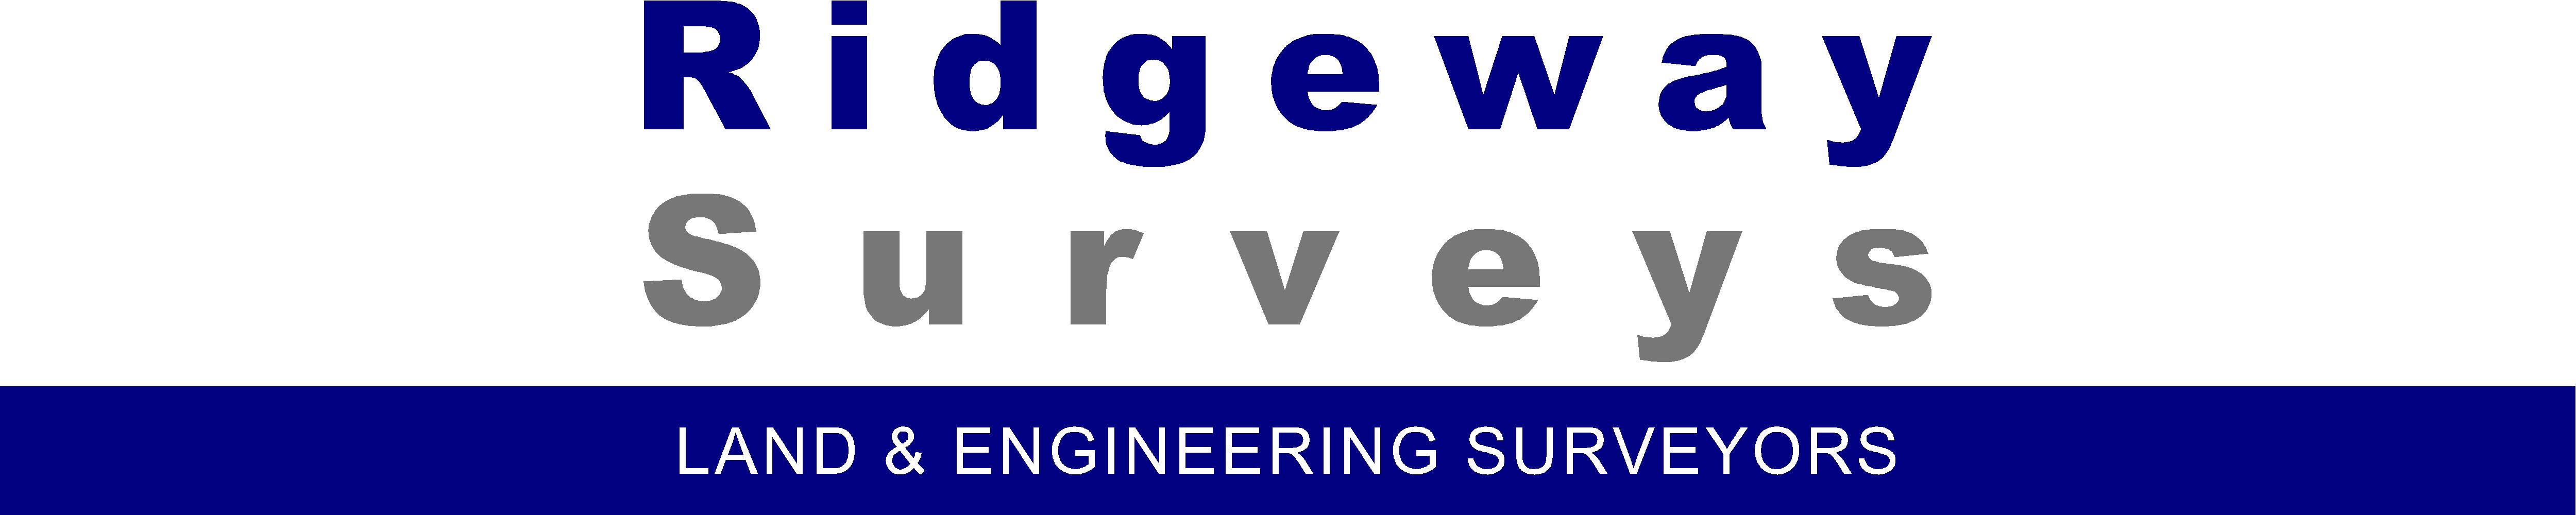 Ridgeway Surveys Ltd. Land & Engineering Surveyors